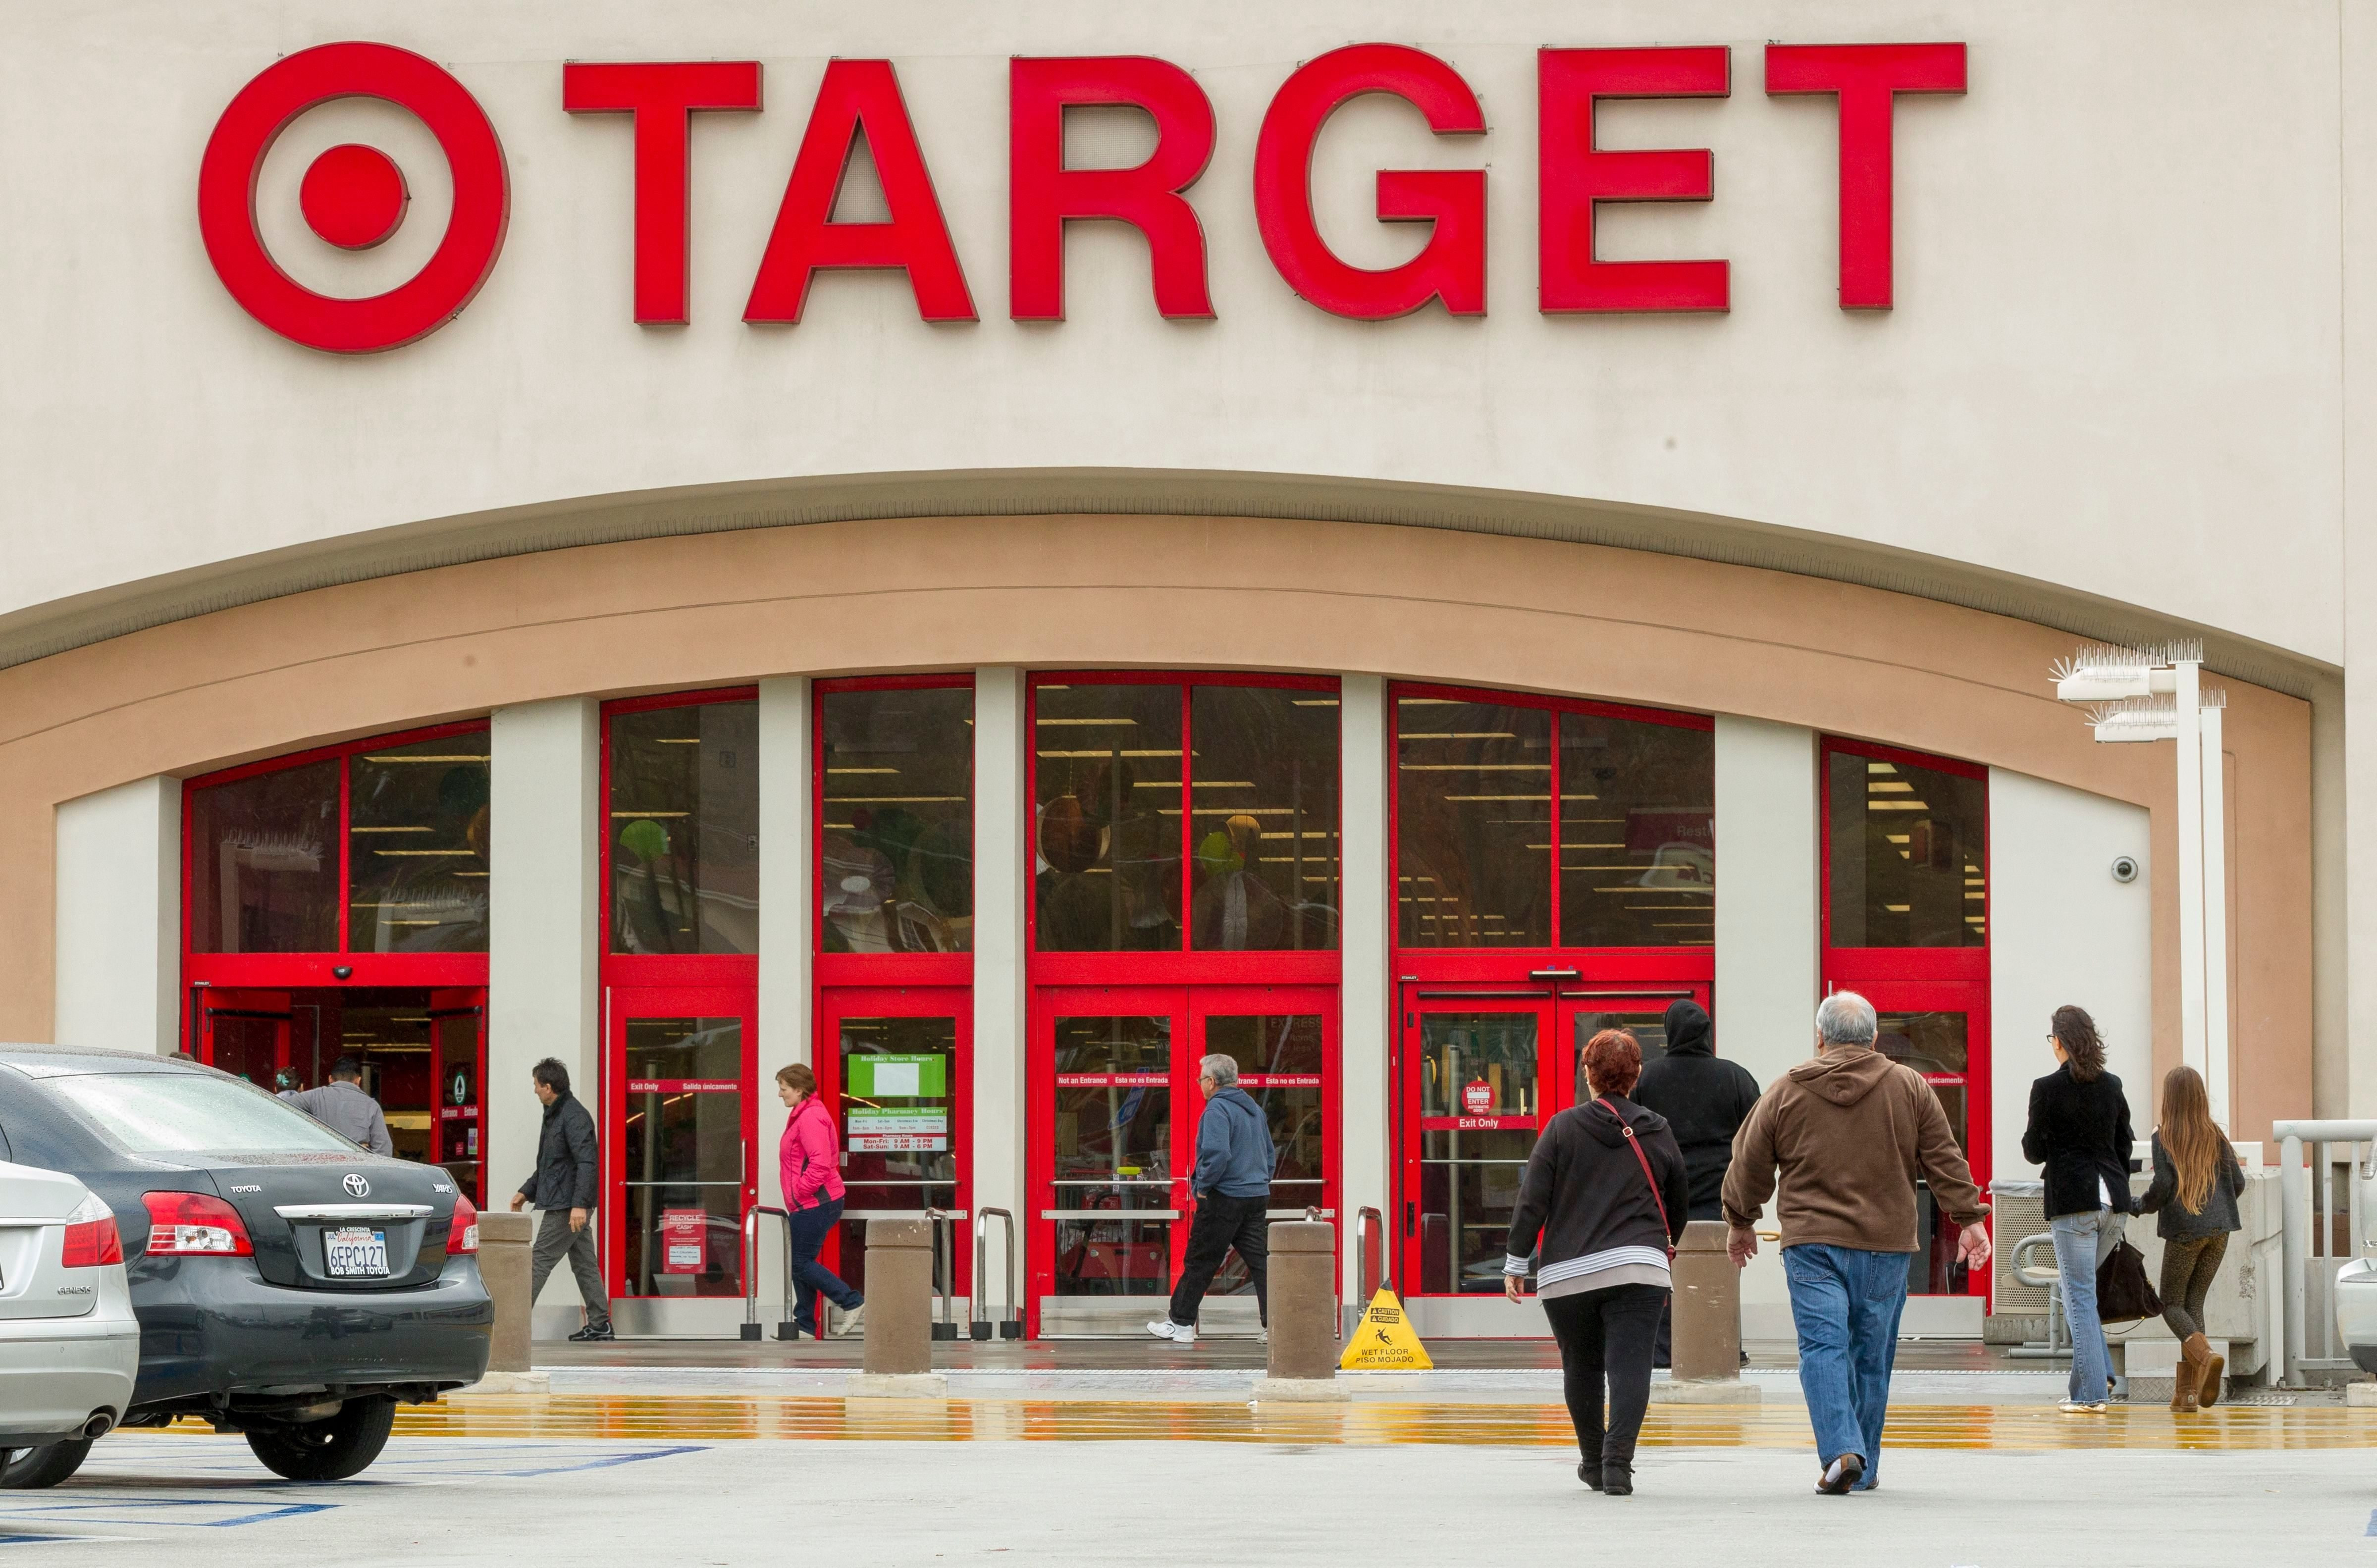 d7766ce71 Sneaky Ways Target Gets You to Spend More | Reader's Digest